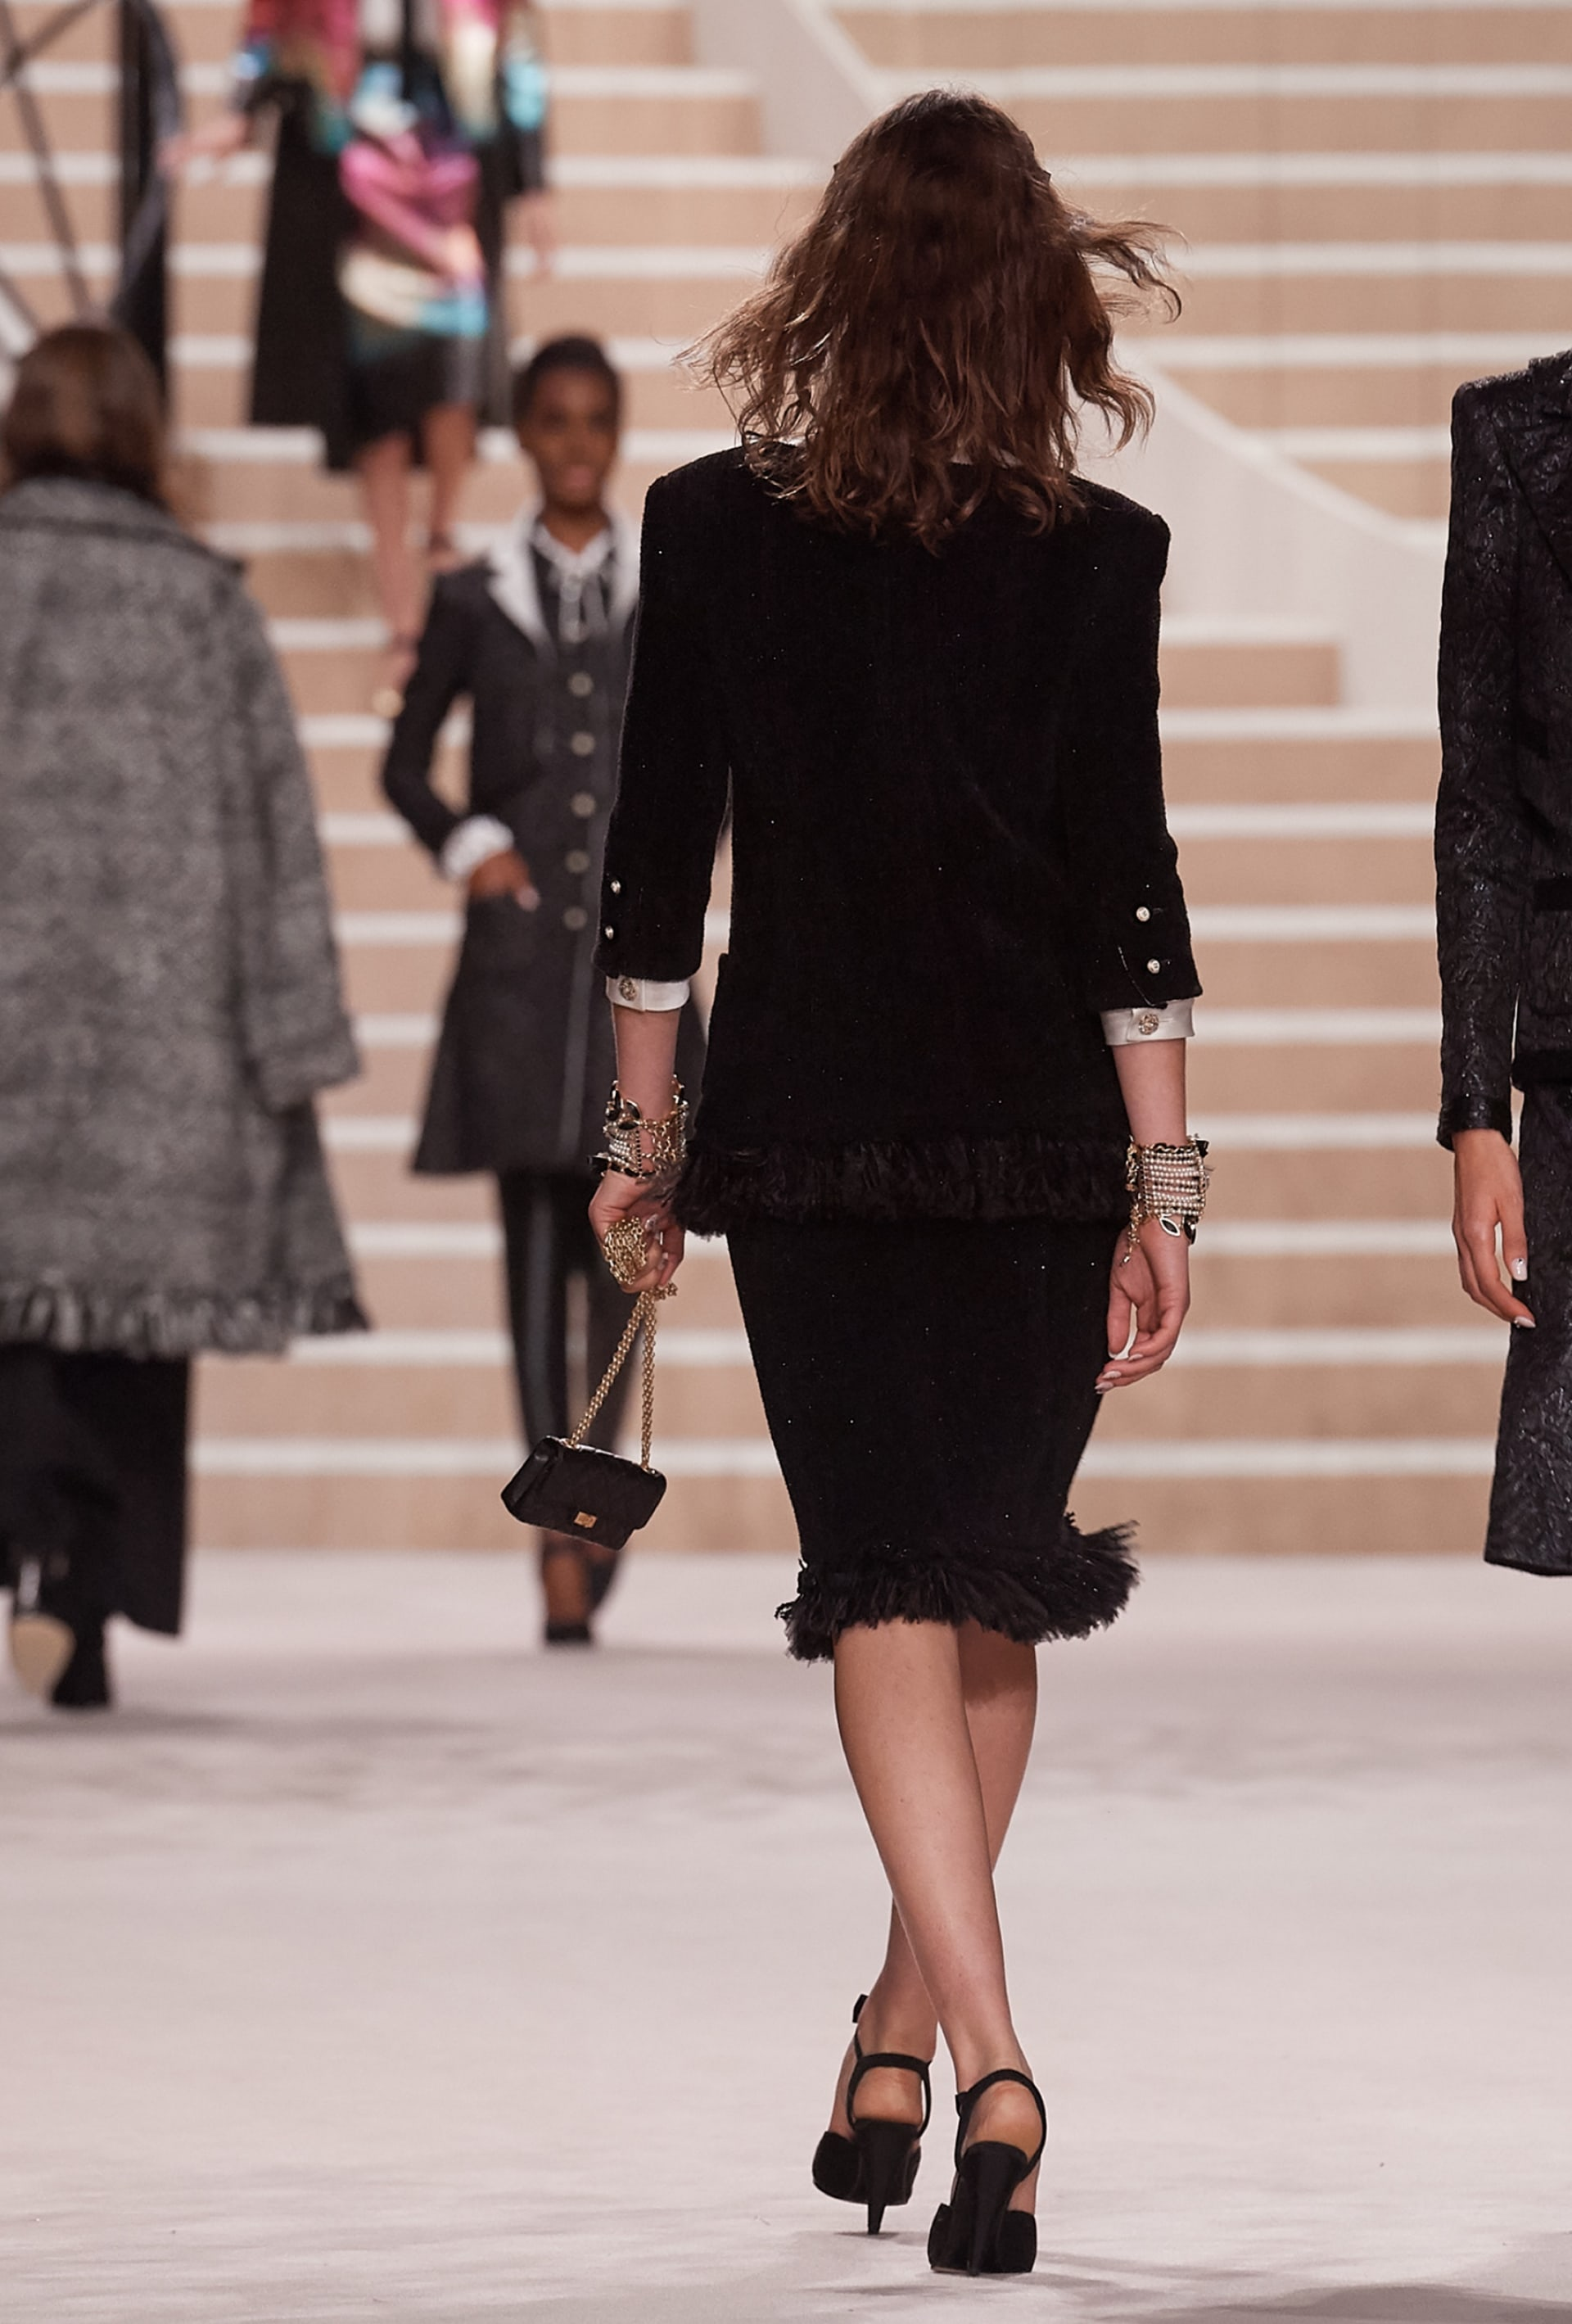 View 4 - Look 8 - Métiers d'Art 2019/20 - see full sized version